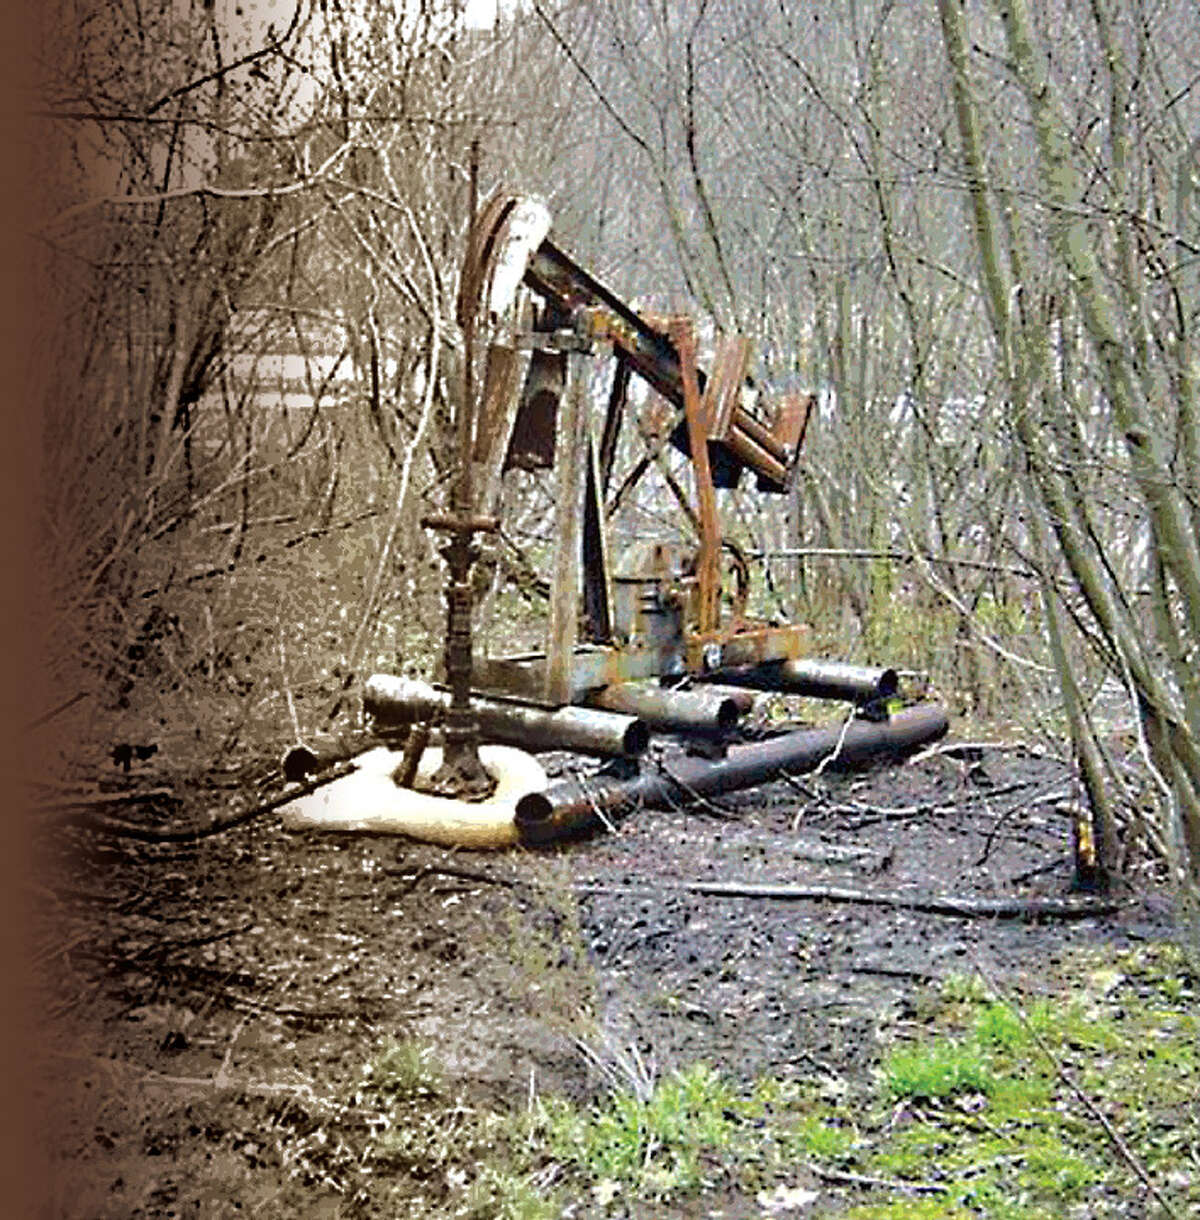 This abandoned oil well in Steuben County is among 91 wells capped by the U.S. Environmental Protection Agency because the state lacks the funds. (EPA photo)